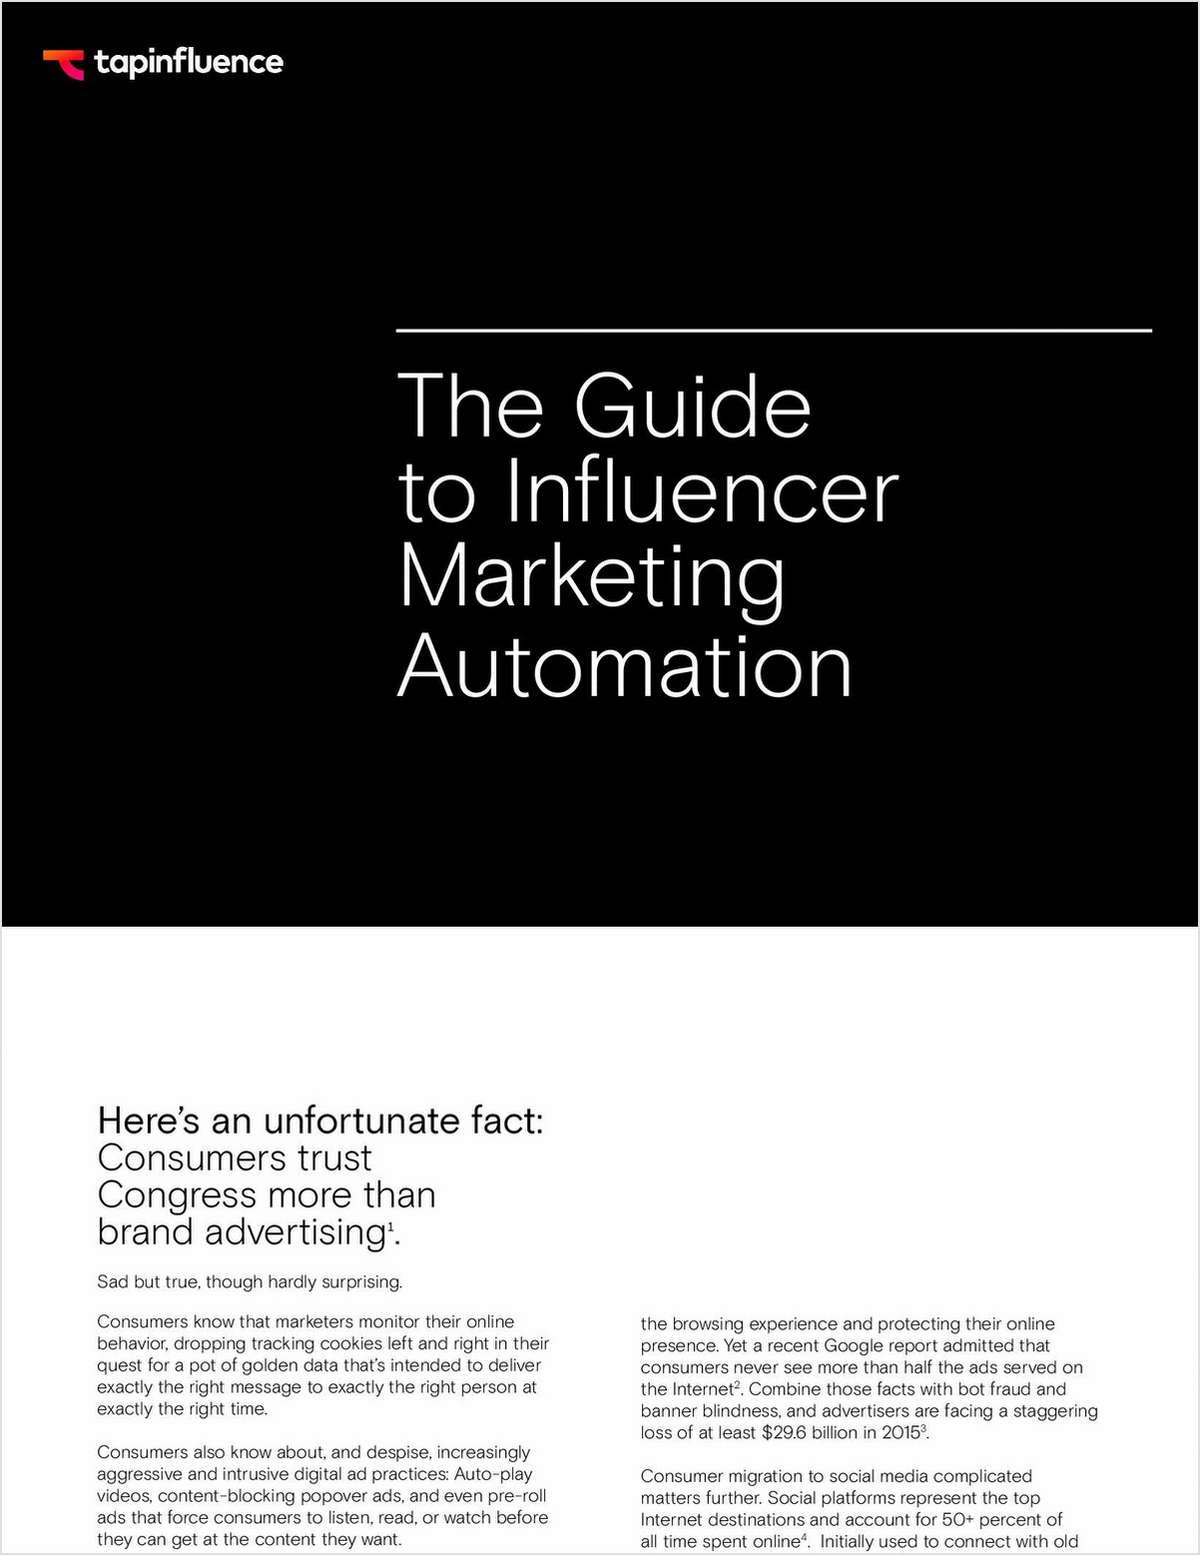 The Guide to Influencer Marketing Automation